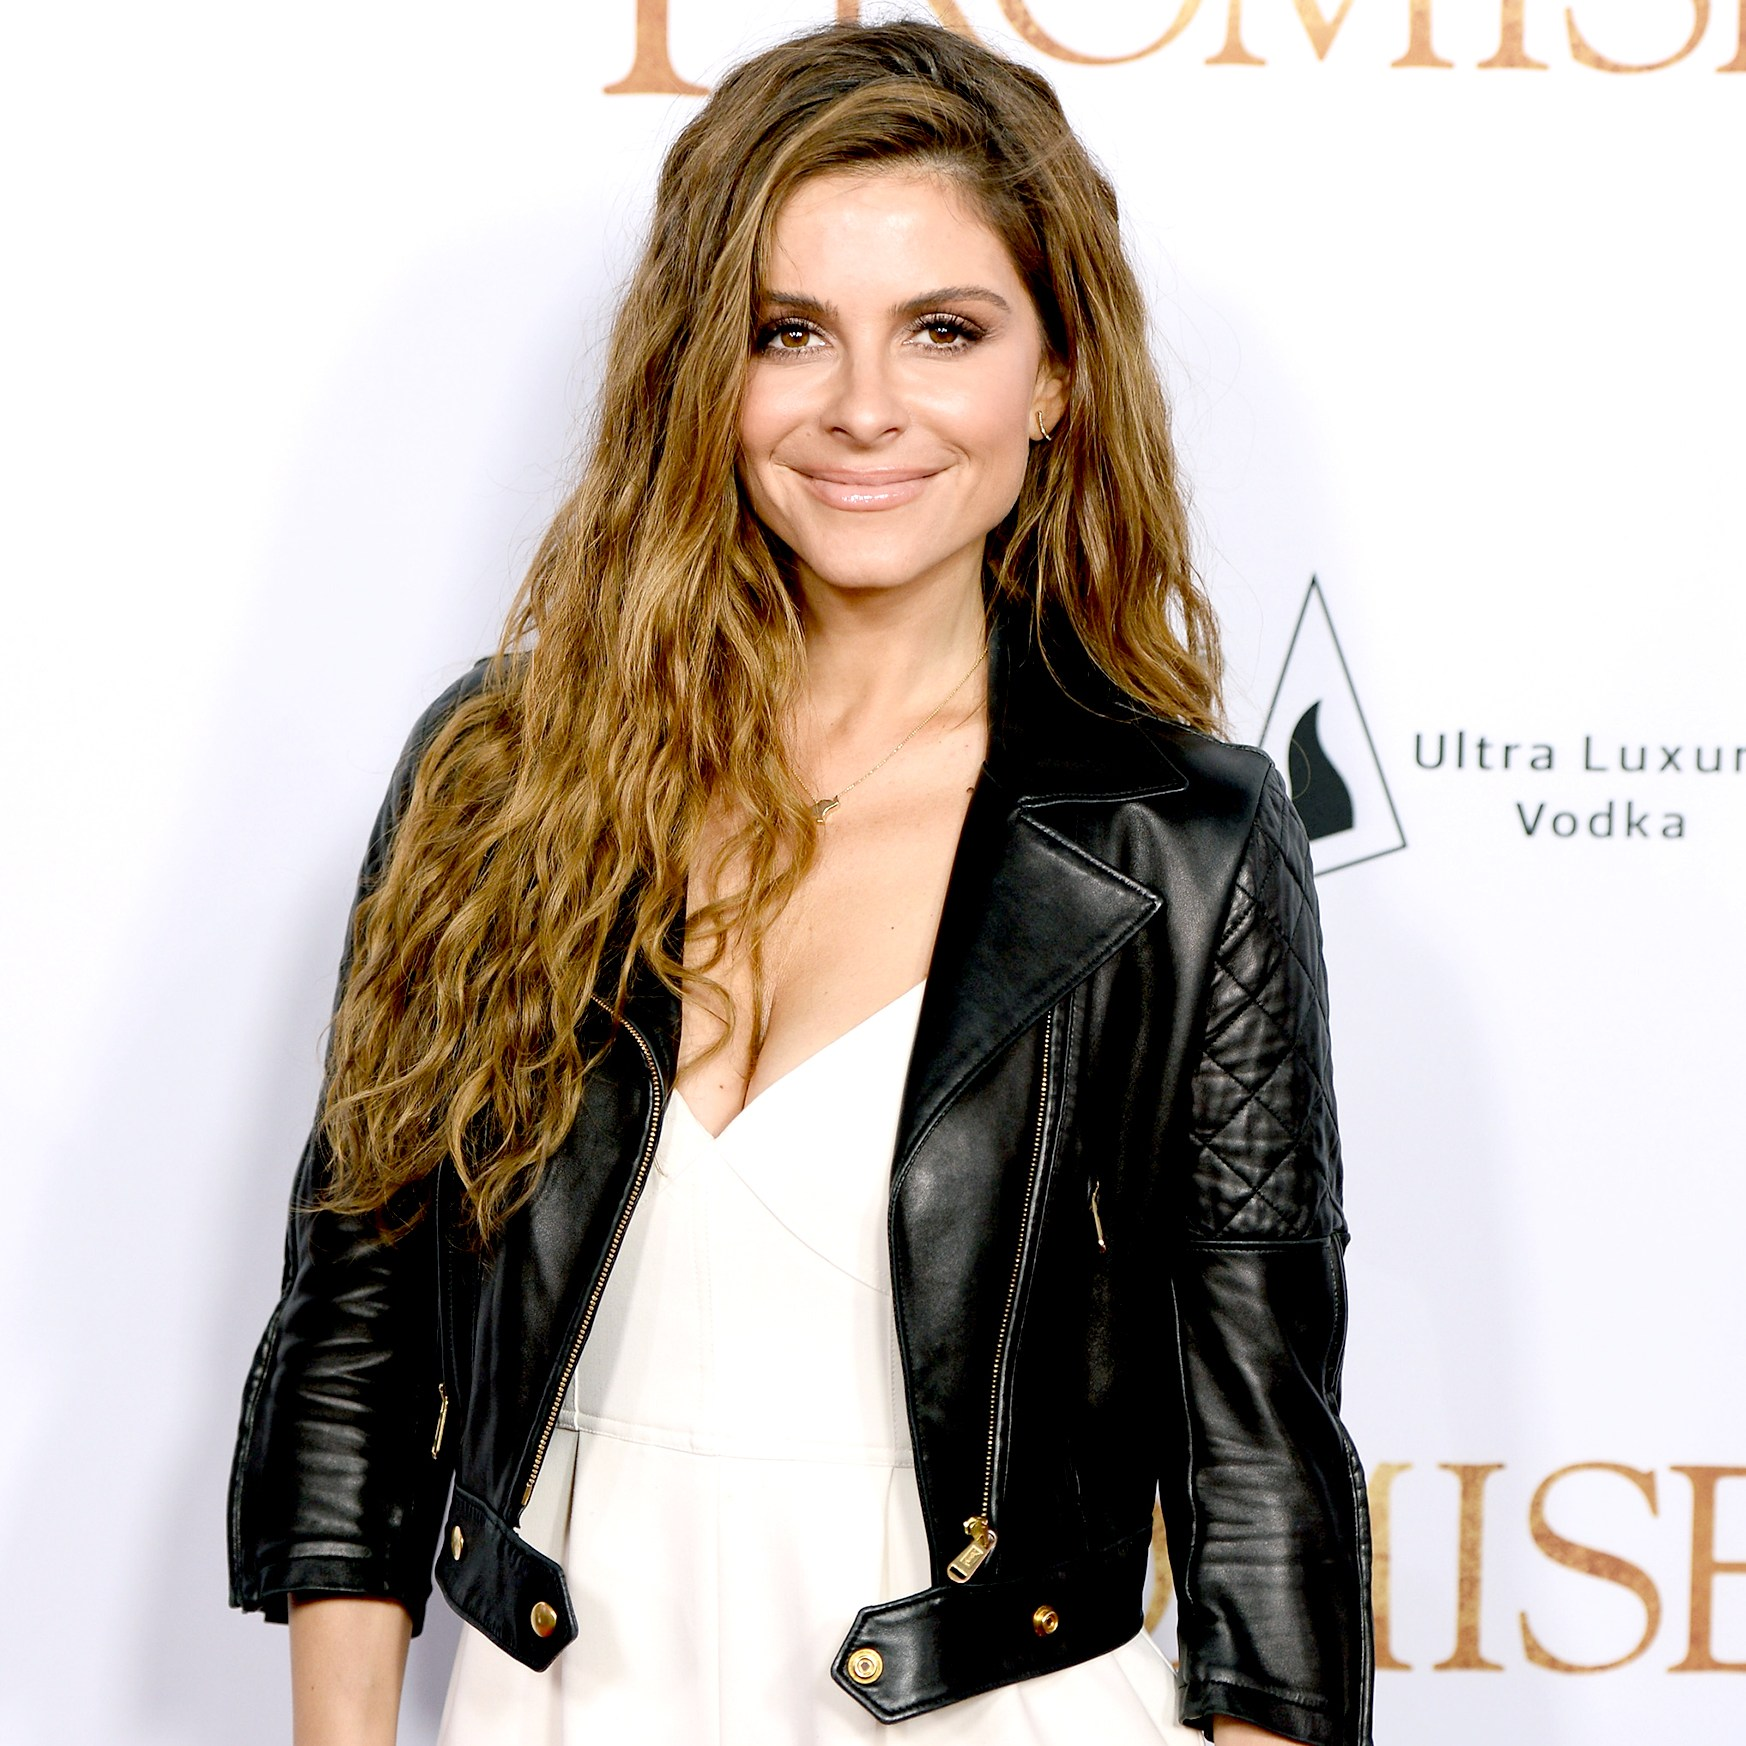 Maria Menounos arrives to the Los Angeles premiere of 'The Promise' at TCL Chinese Theatre on April 12, 2017 in Hollywood, California.